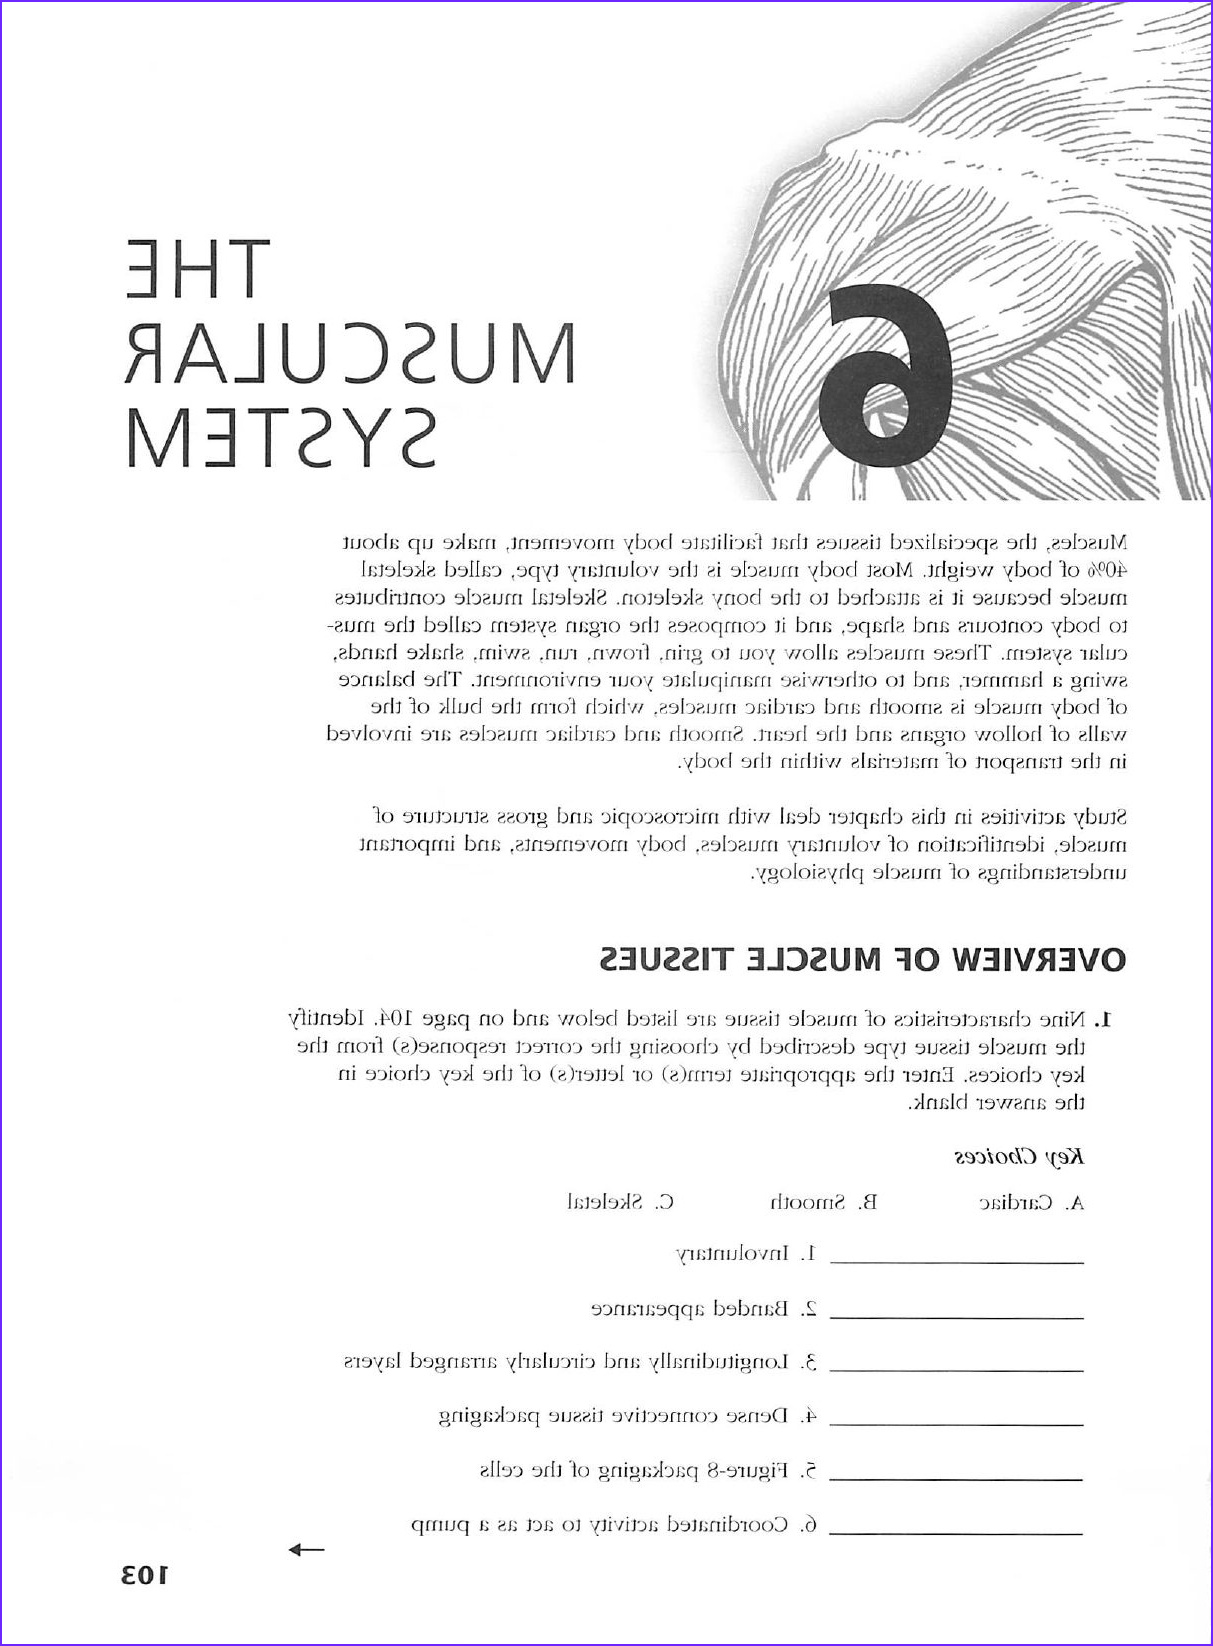 Anatomy and Physiology Coloring Workbook Answers Elegant Photos Anatomy and Physiology Coloring Workbook Answer Key Ch 8